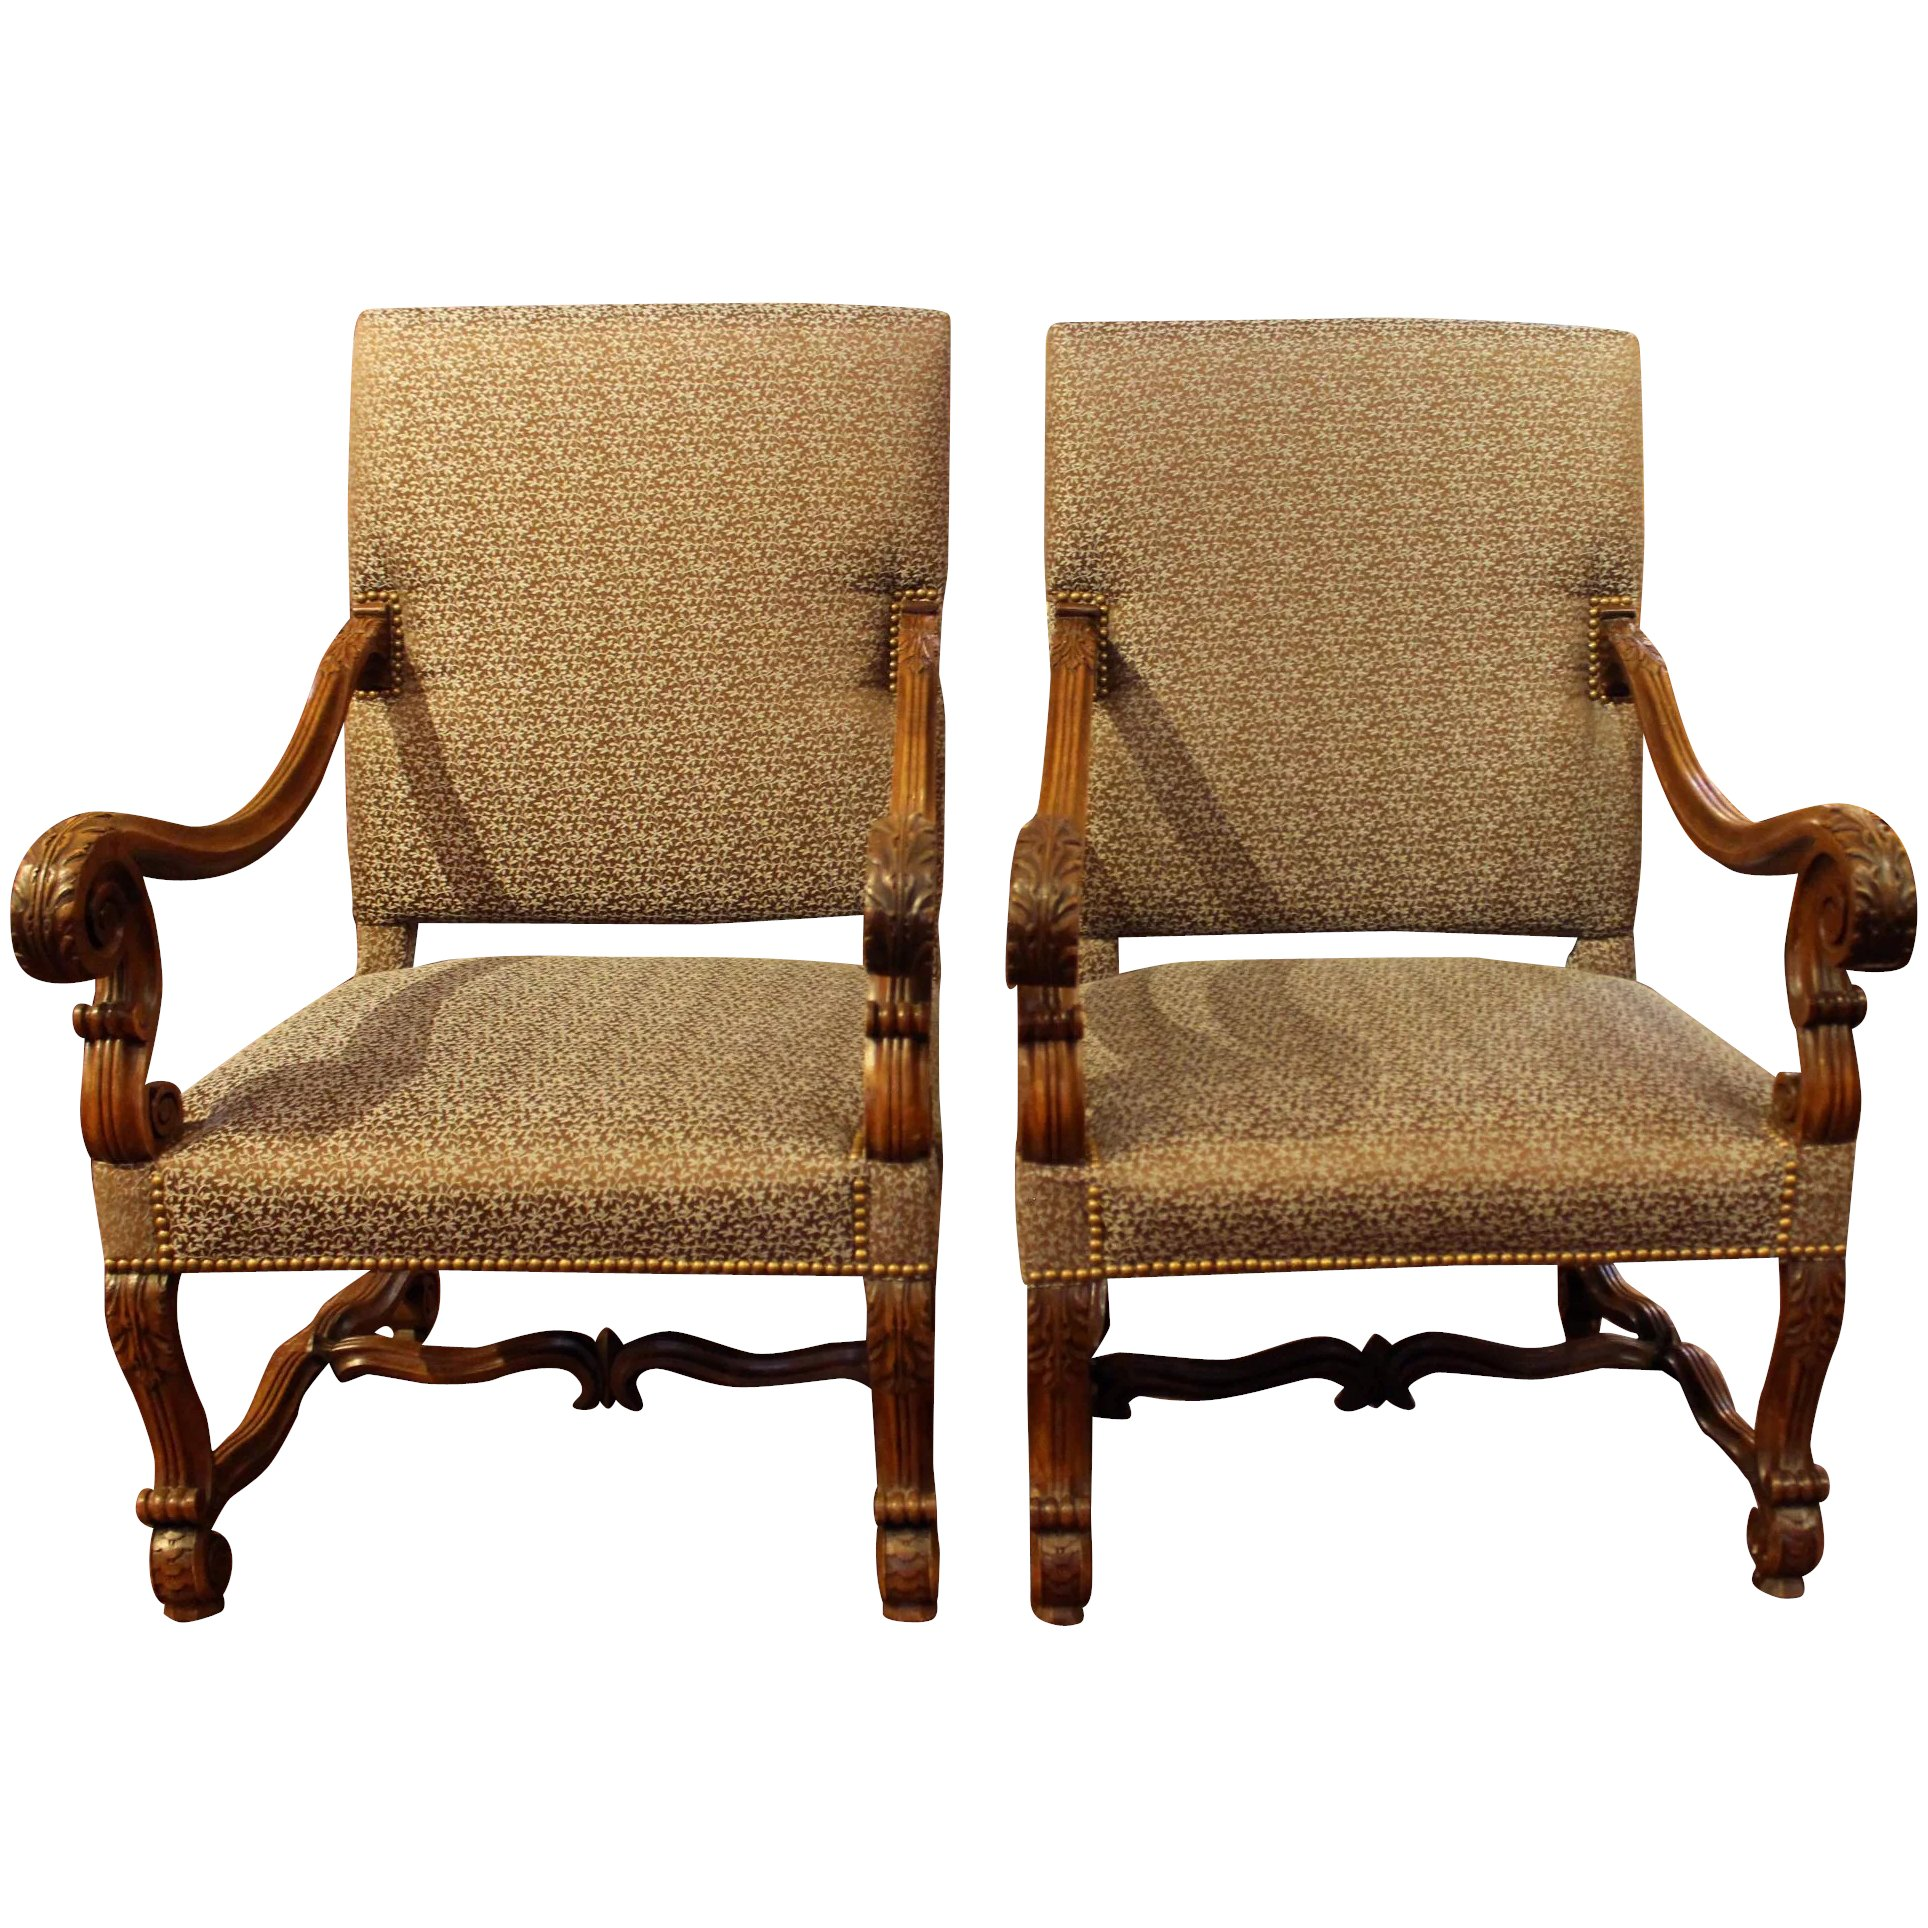 Fauteuils Louis 13 Pair Of Louis Xiii Style Fauteuils